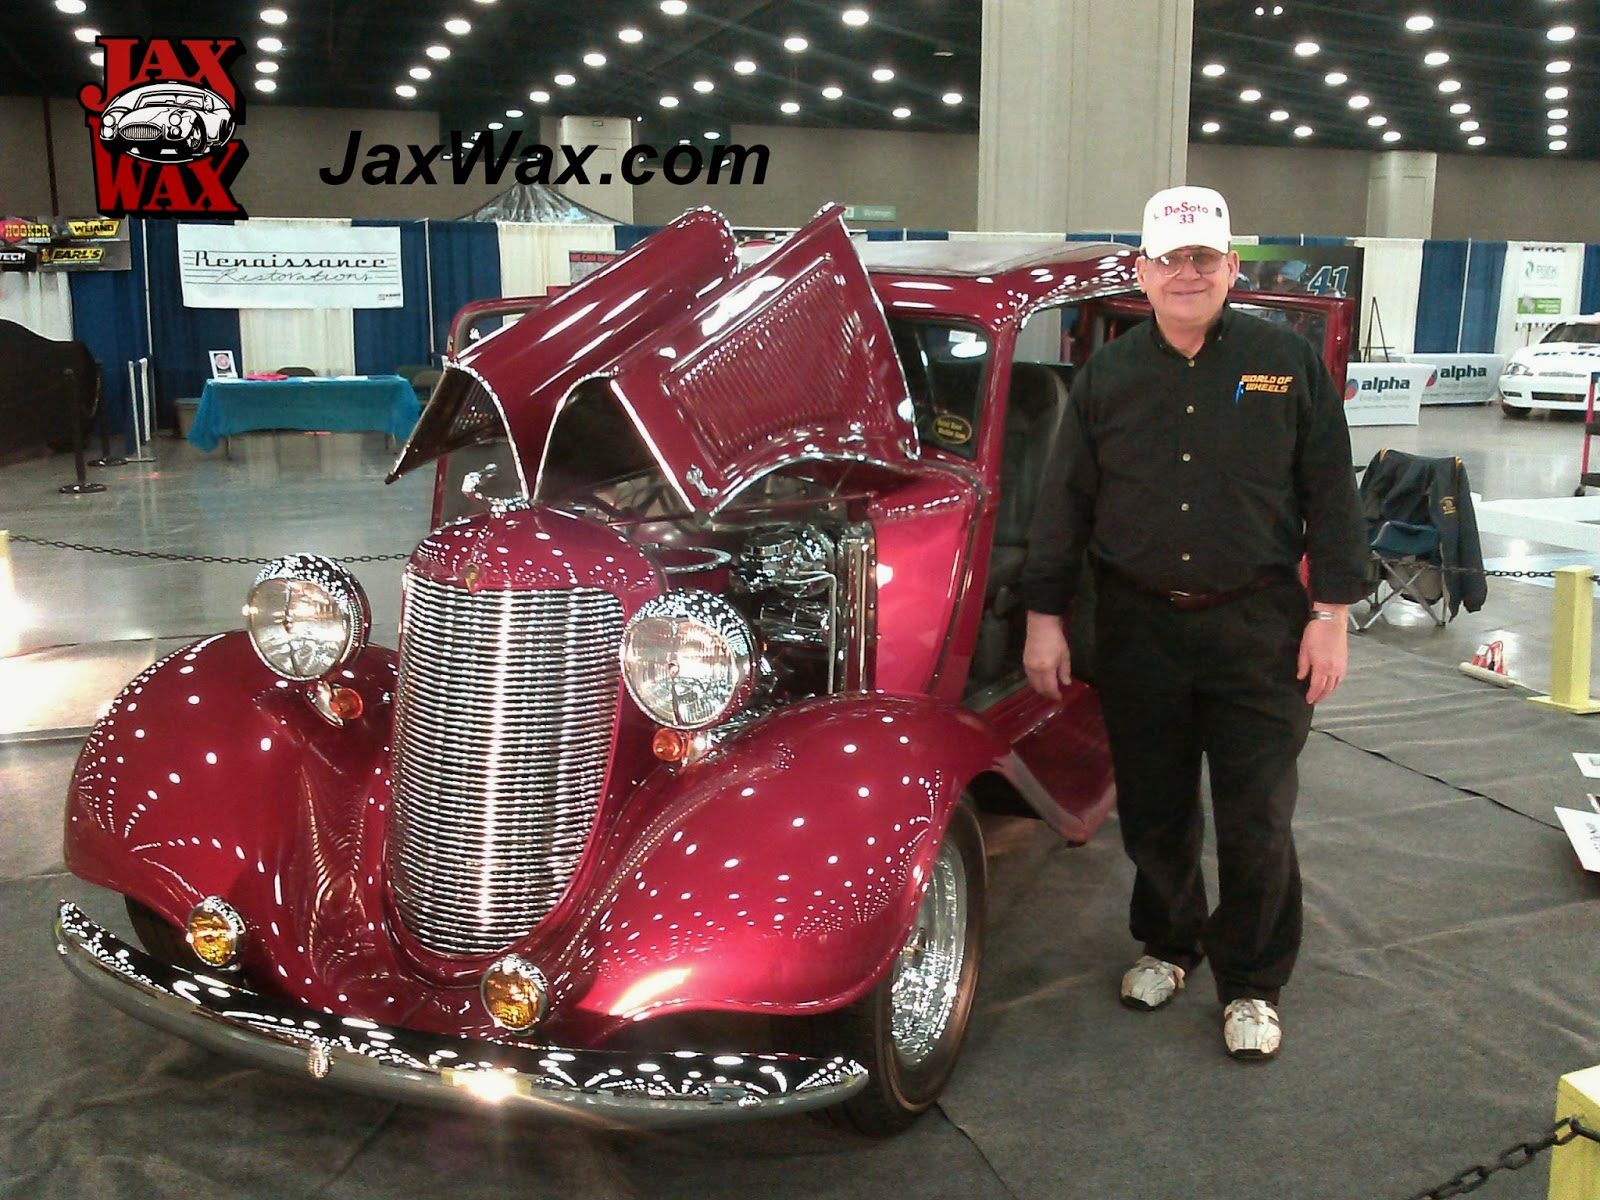 1933 Desoto Carl Casper Auto Show Jax Wax Customer